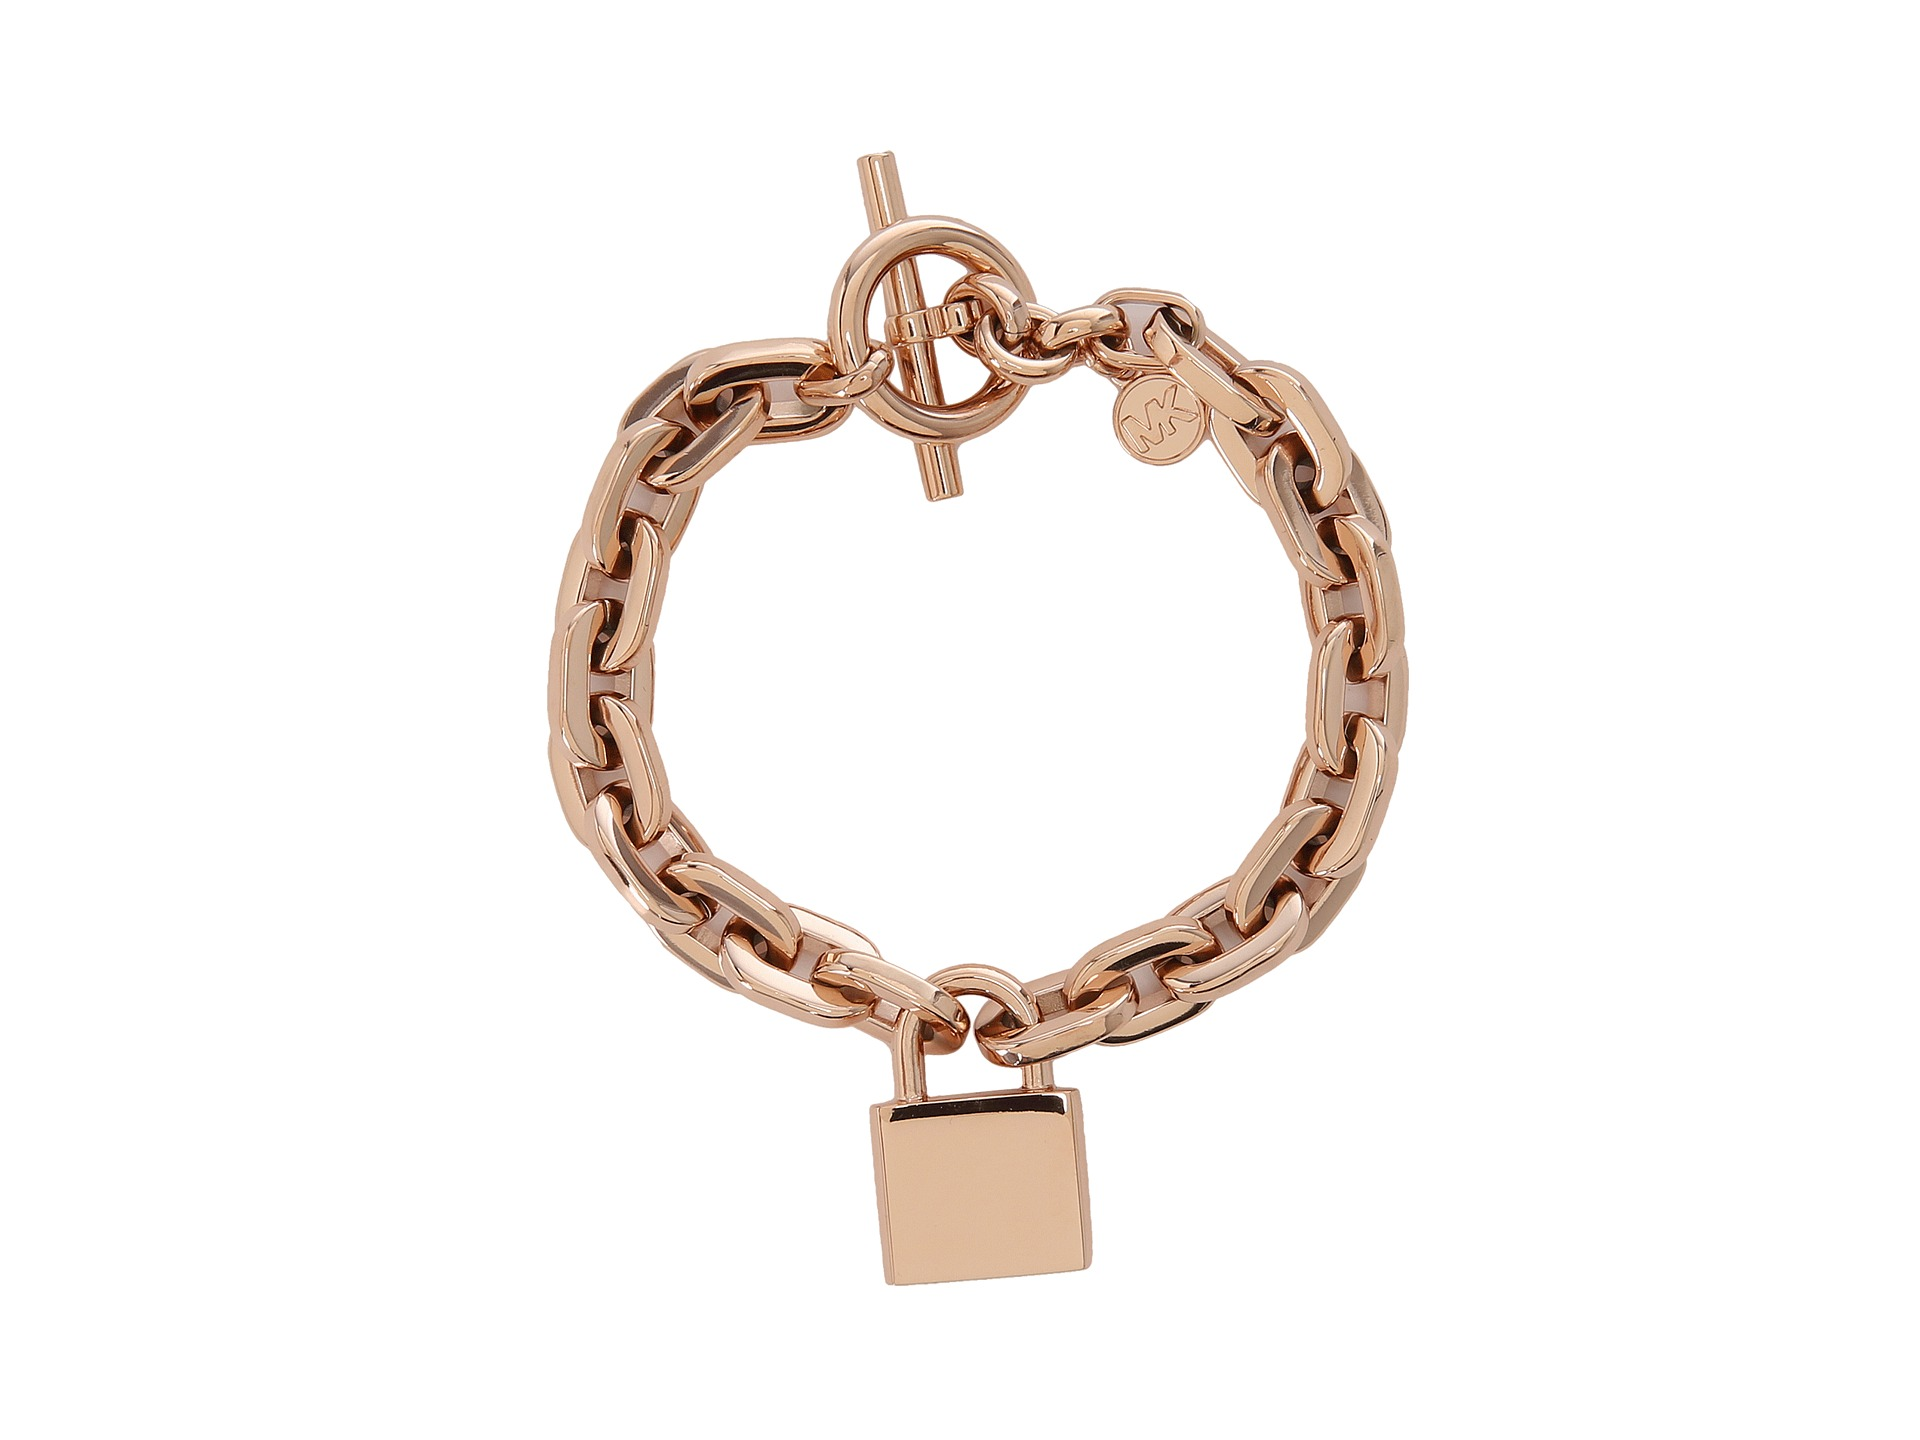 michael kors collection chainlink padlock toggle bracelet